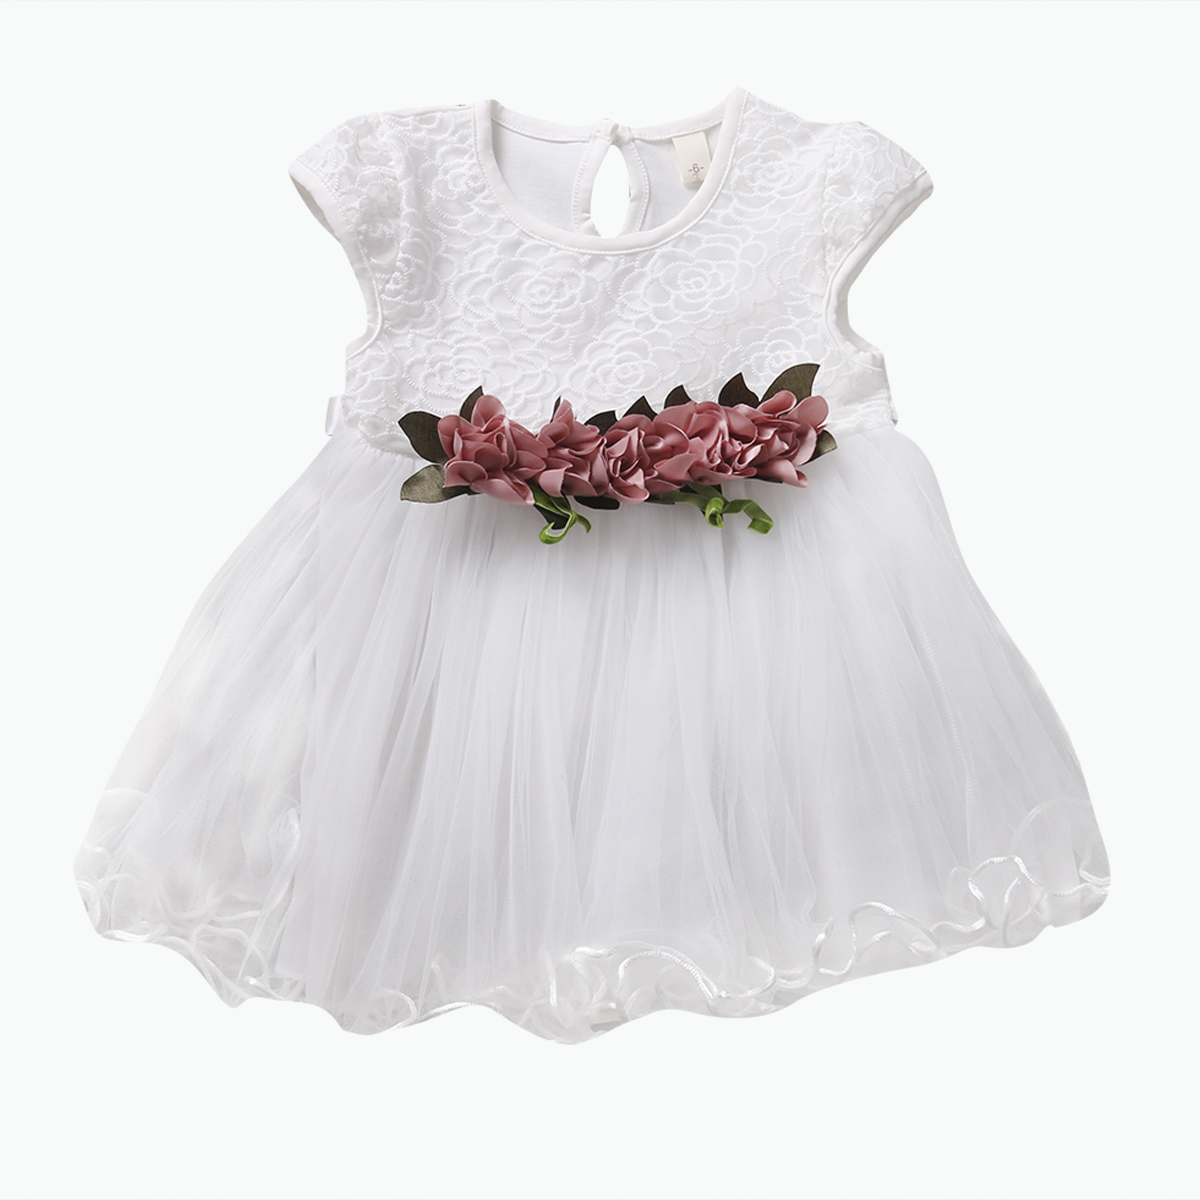 Princess Baby Girls Lace Dress Toddler Infant Kids Baby Girls Sleeveless Ball Gown Cotton Kids Girls Summer Floral Dress Outfits infant toddler kids baby girls summer outfit cotton striped sleeveless tops dress floral short pants girls clothes sunsuit 0 4y